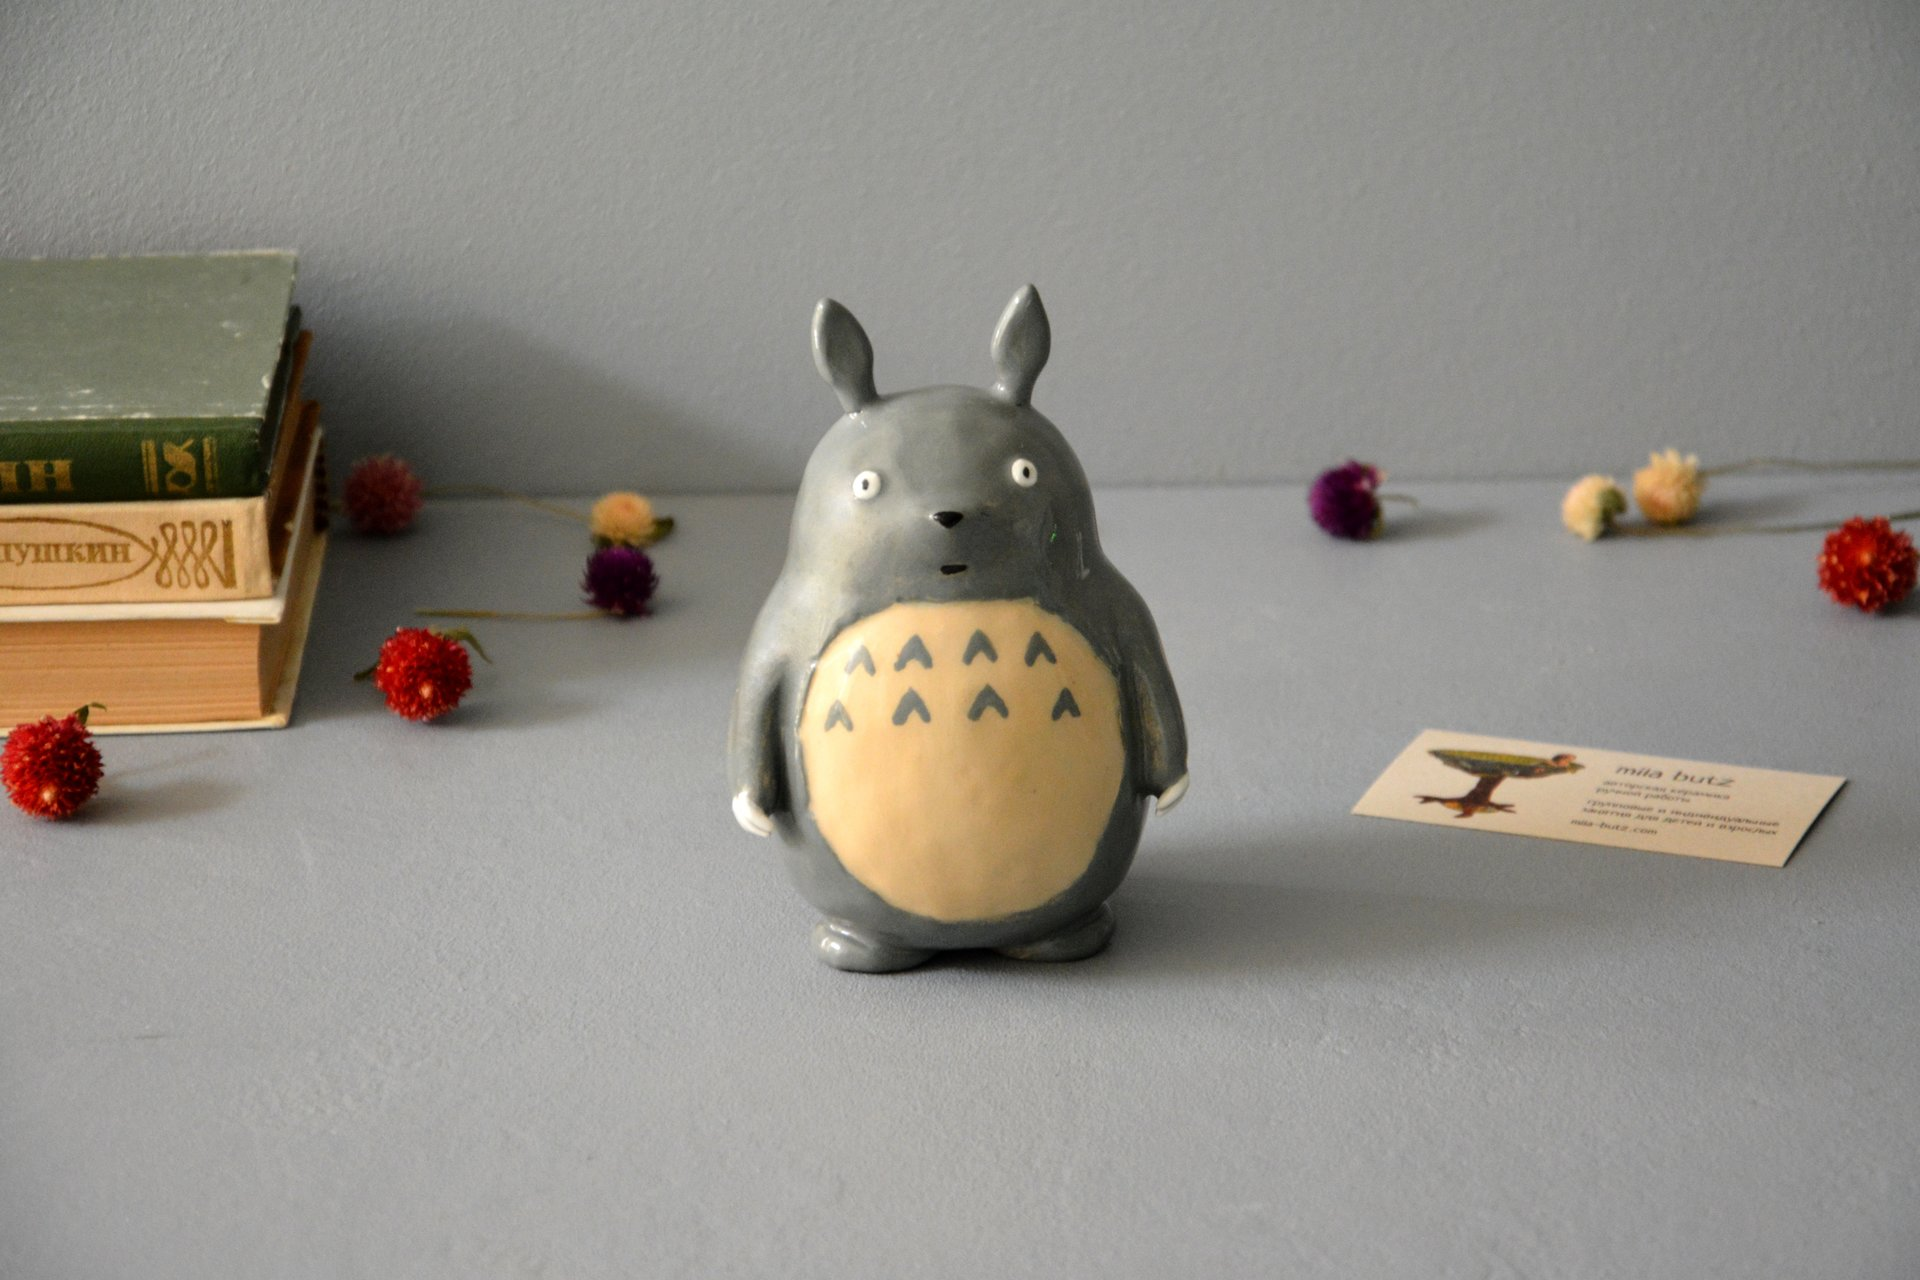 Ceramic figurine Totoro, height - 13 cm, photo 1 of 6.